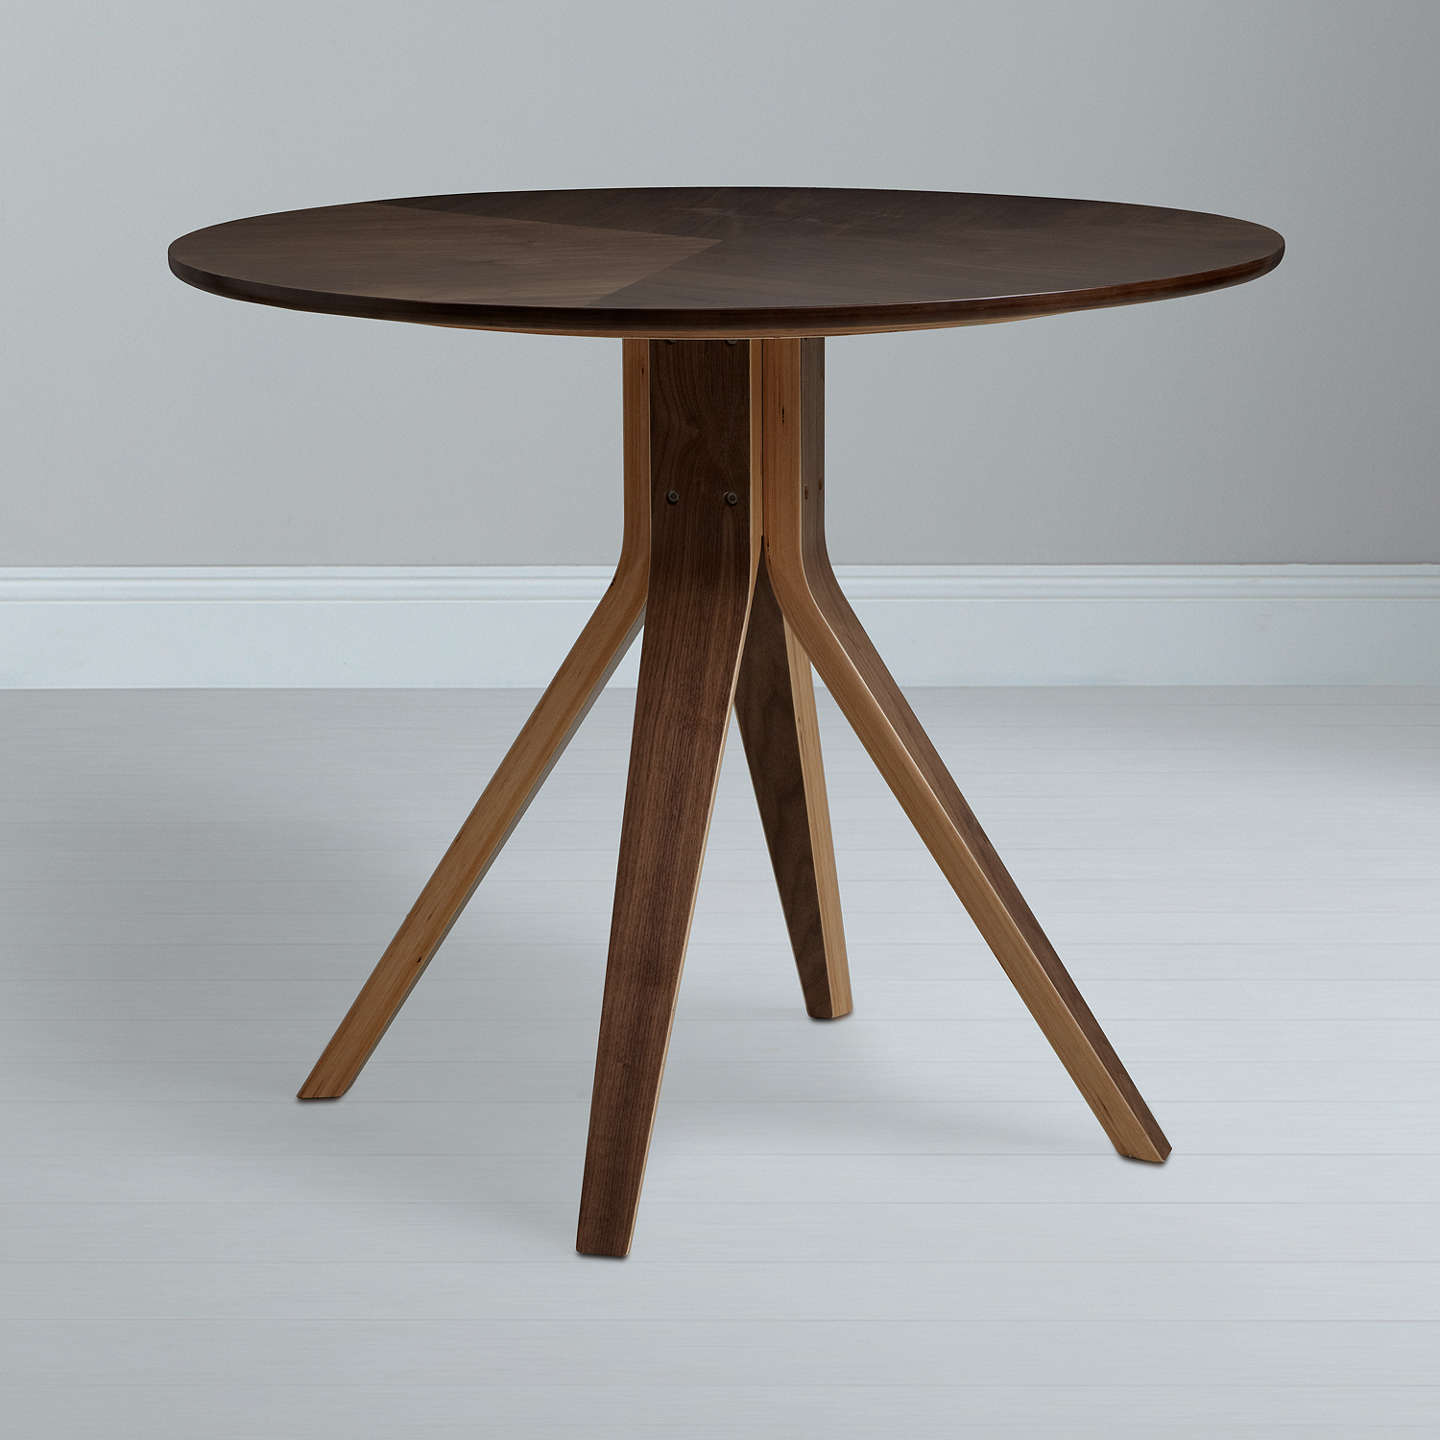 John lewis radar 4 seater round dining table at john lewis for John lewis chinese furniture